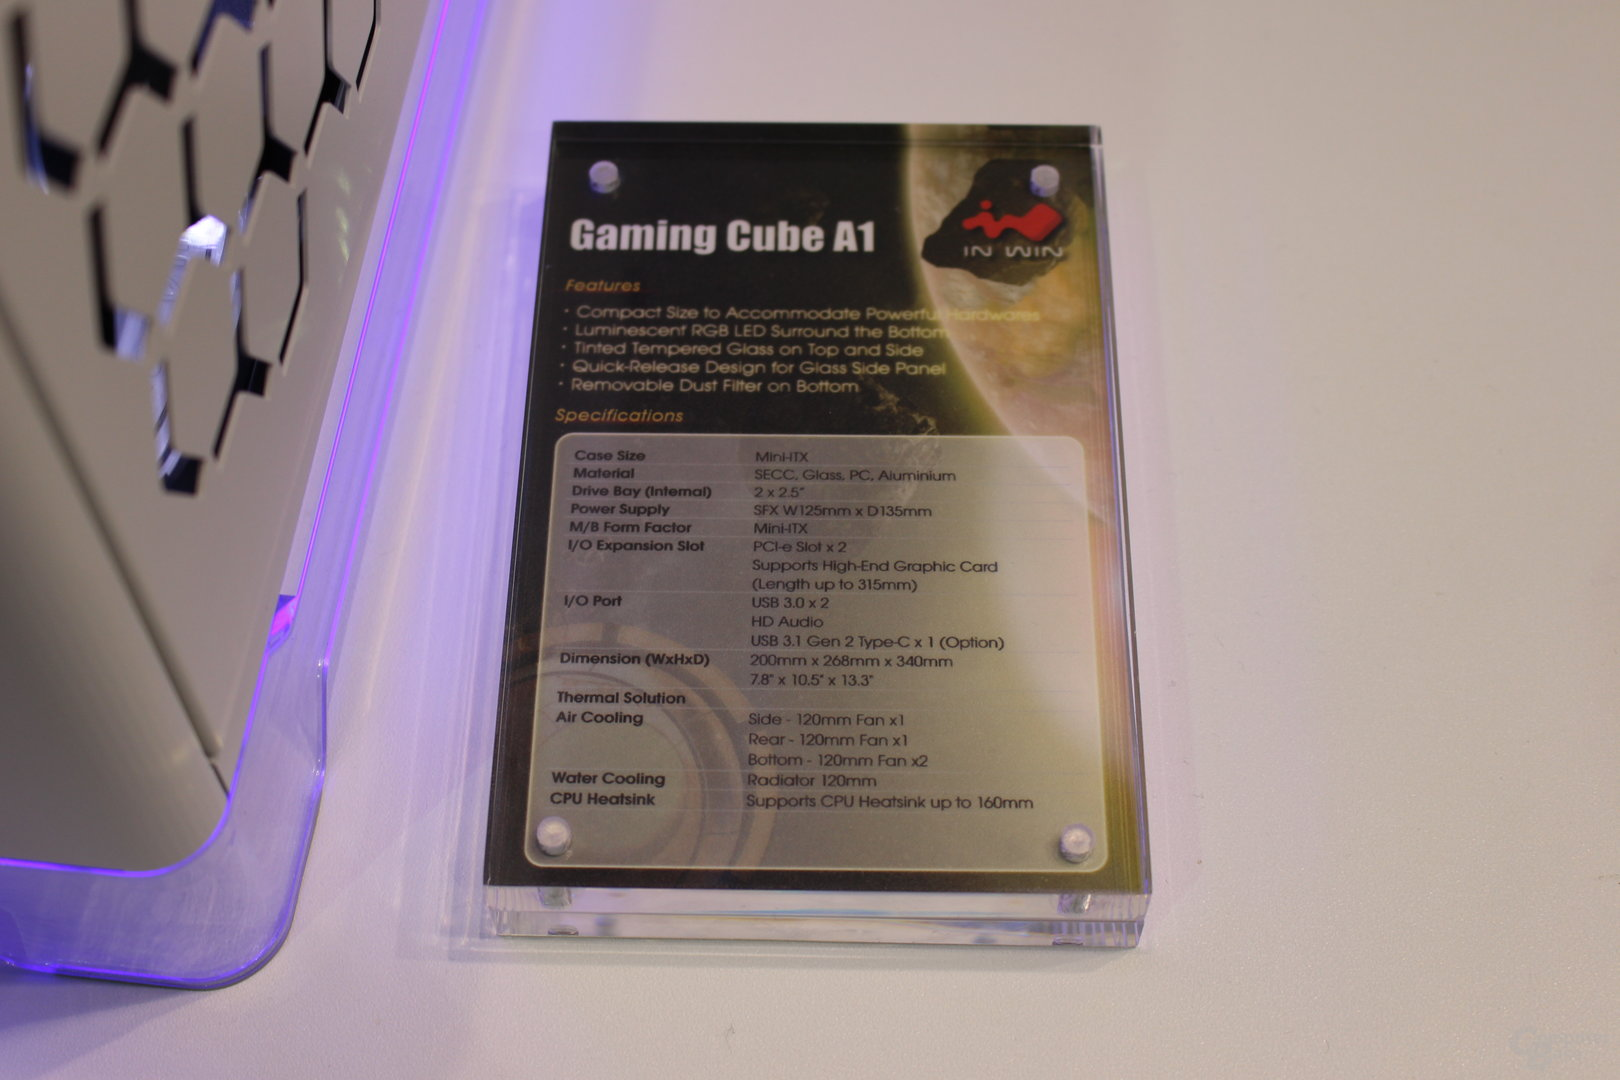 In Win Gaming Cube A1